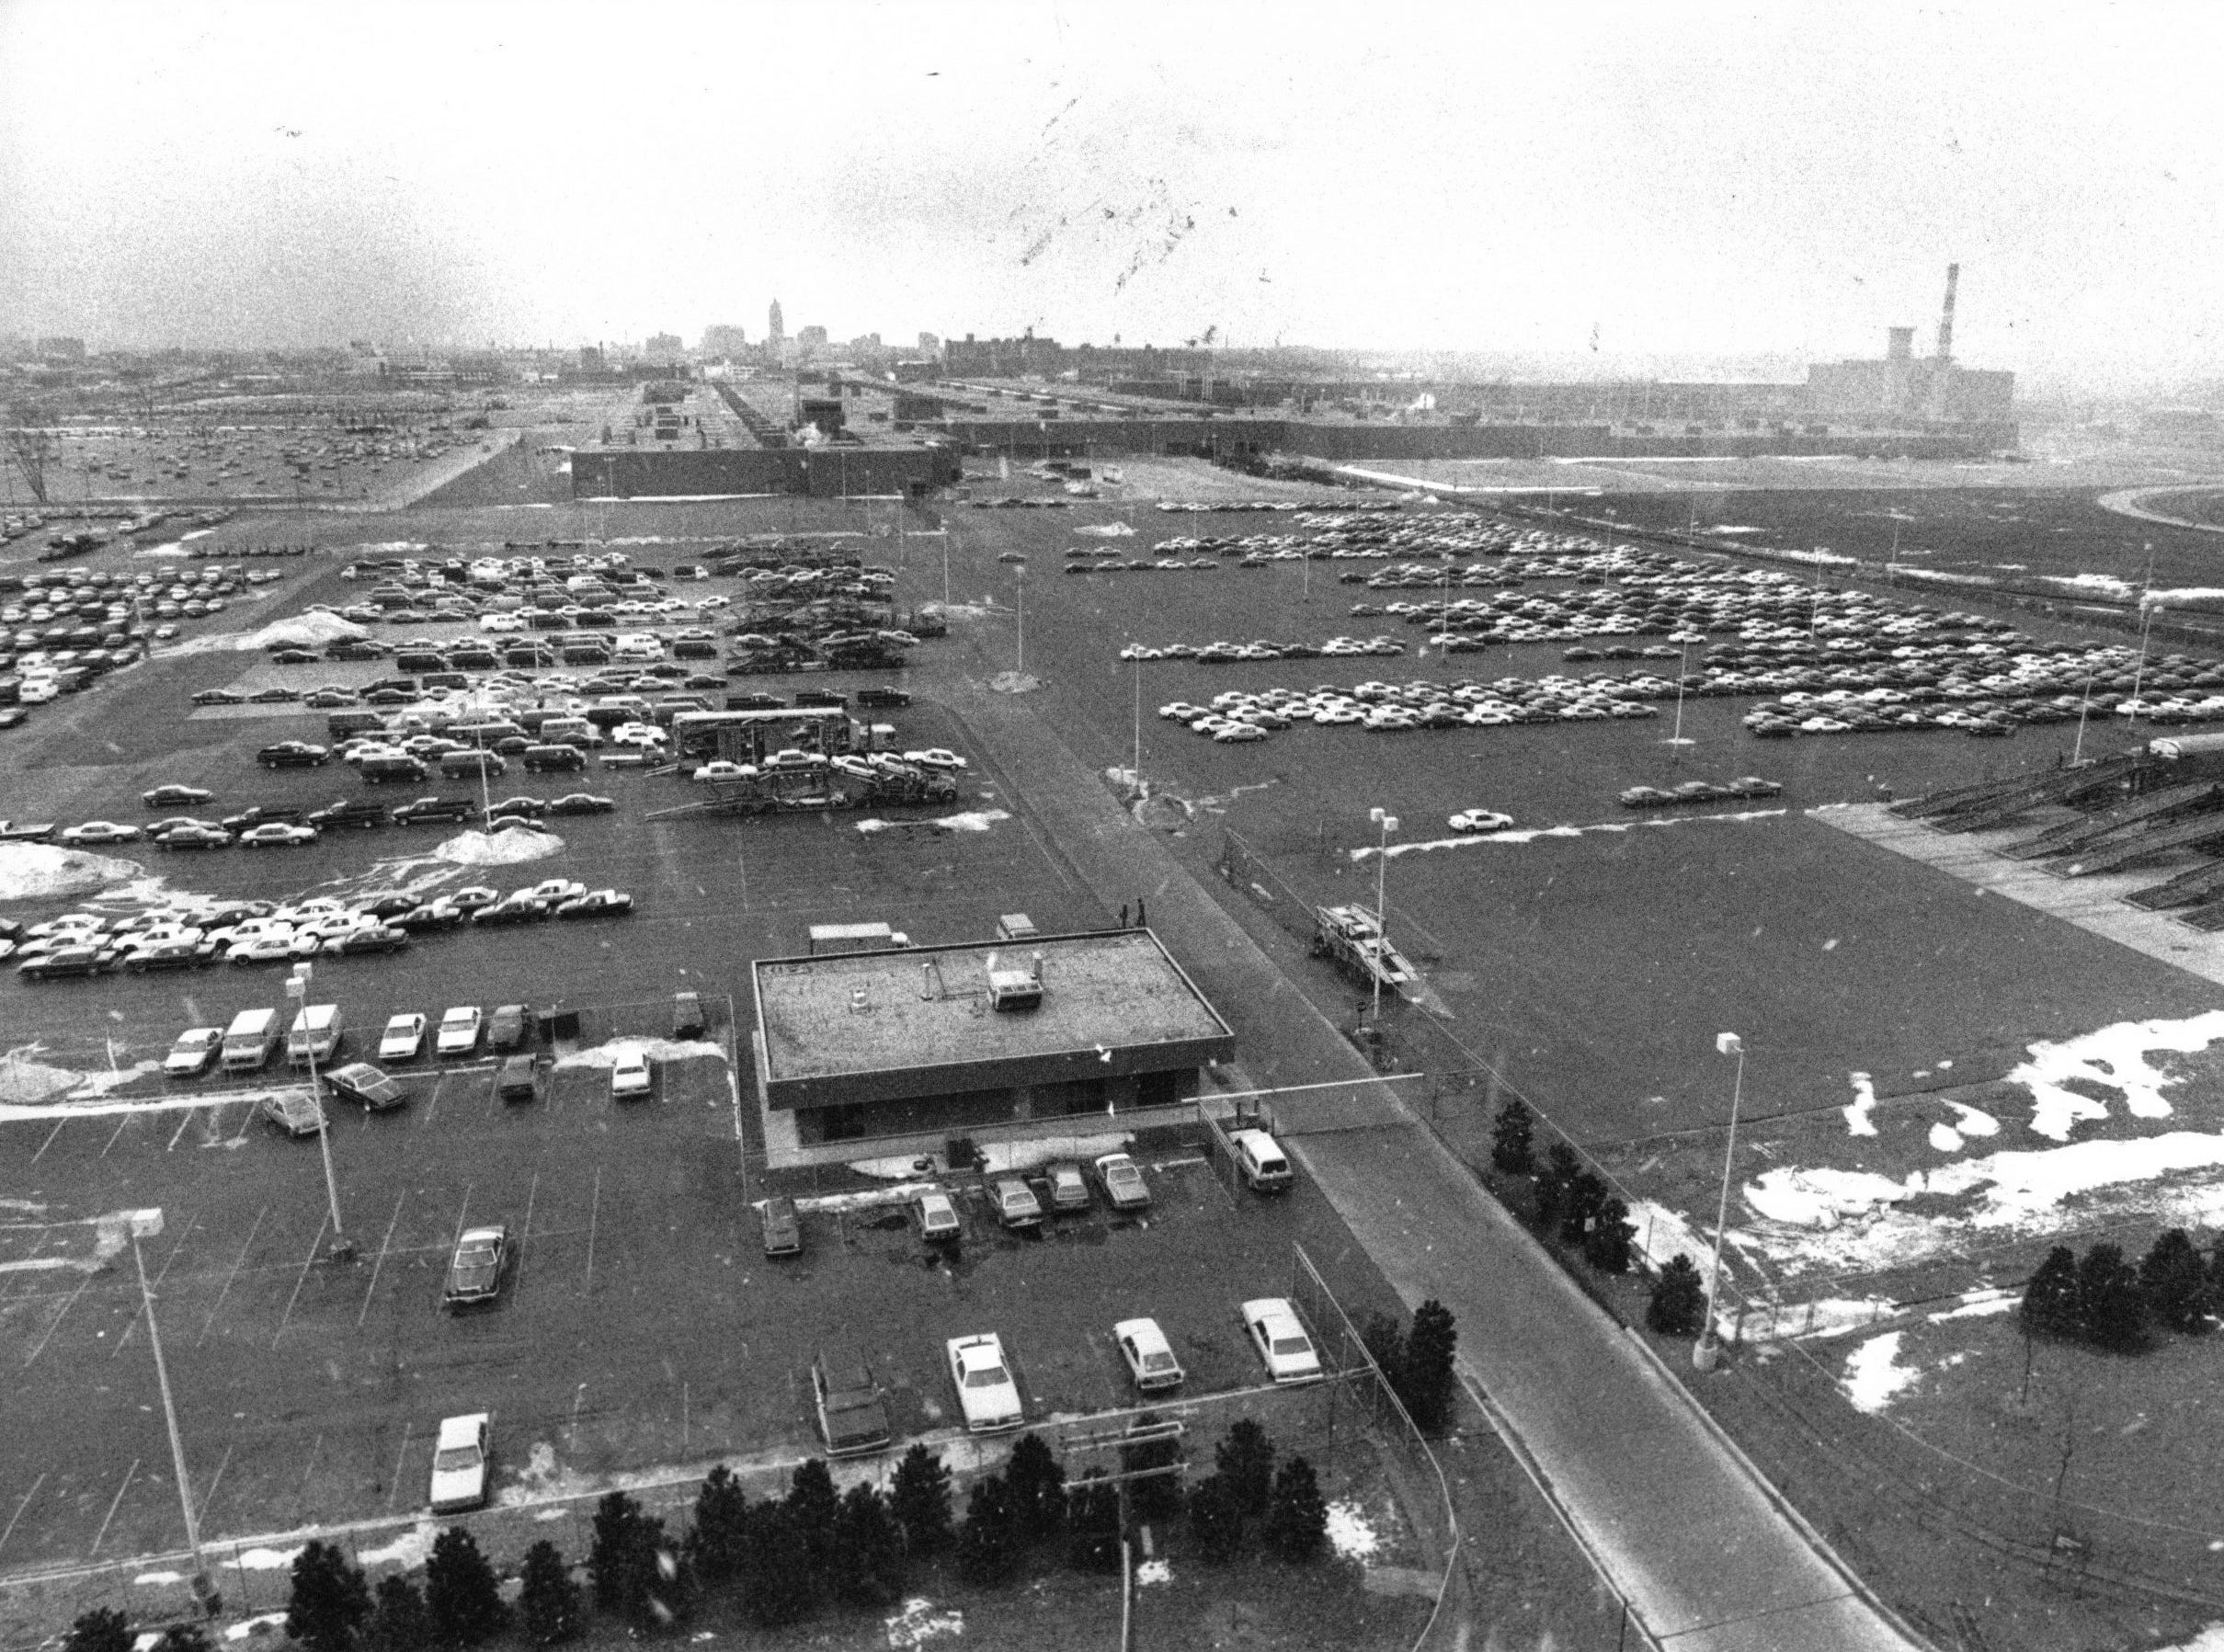 General Motors Corp, Cadillac Assembly Plant. The cost of assembling the land for General Motors' Poletown plant, has more than doubled the original estimate.